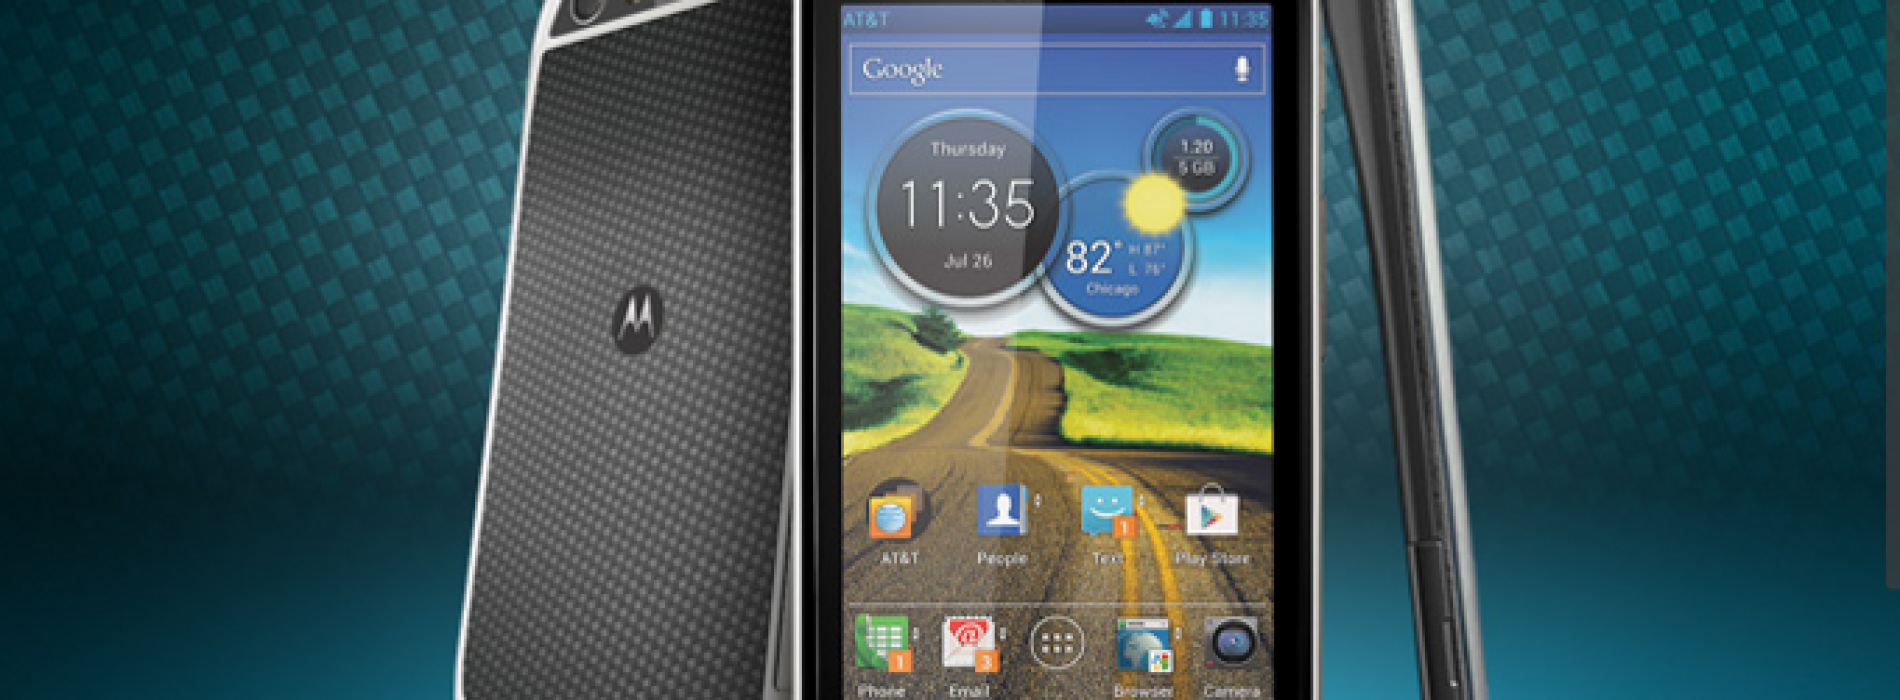 Motorola announces the Atrix HD with LTE, possibly on AT&T